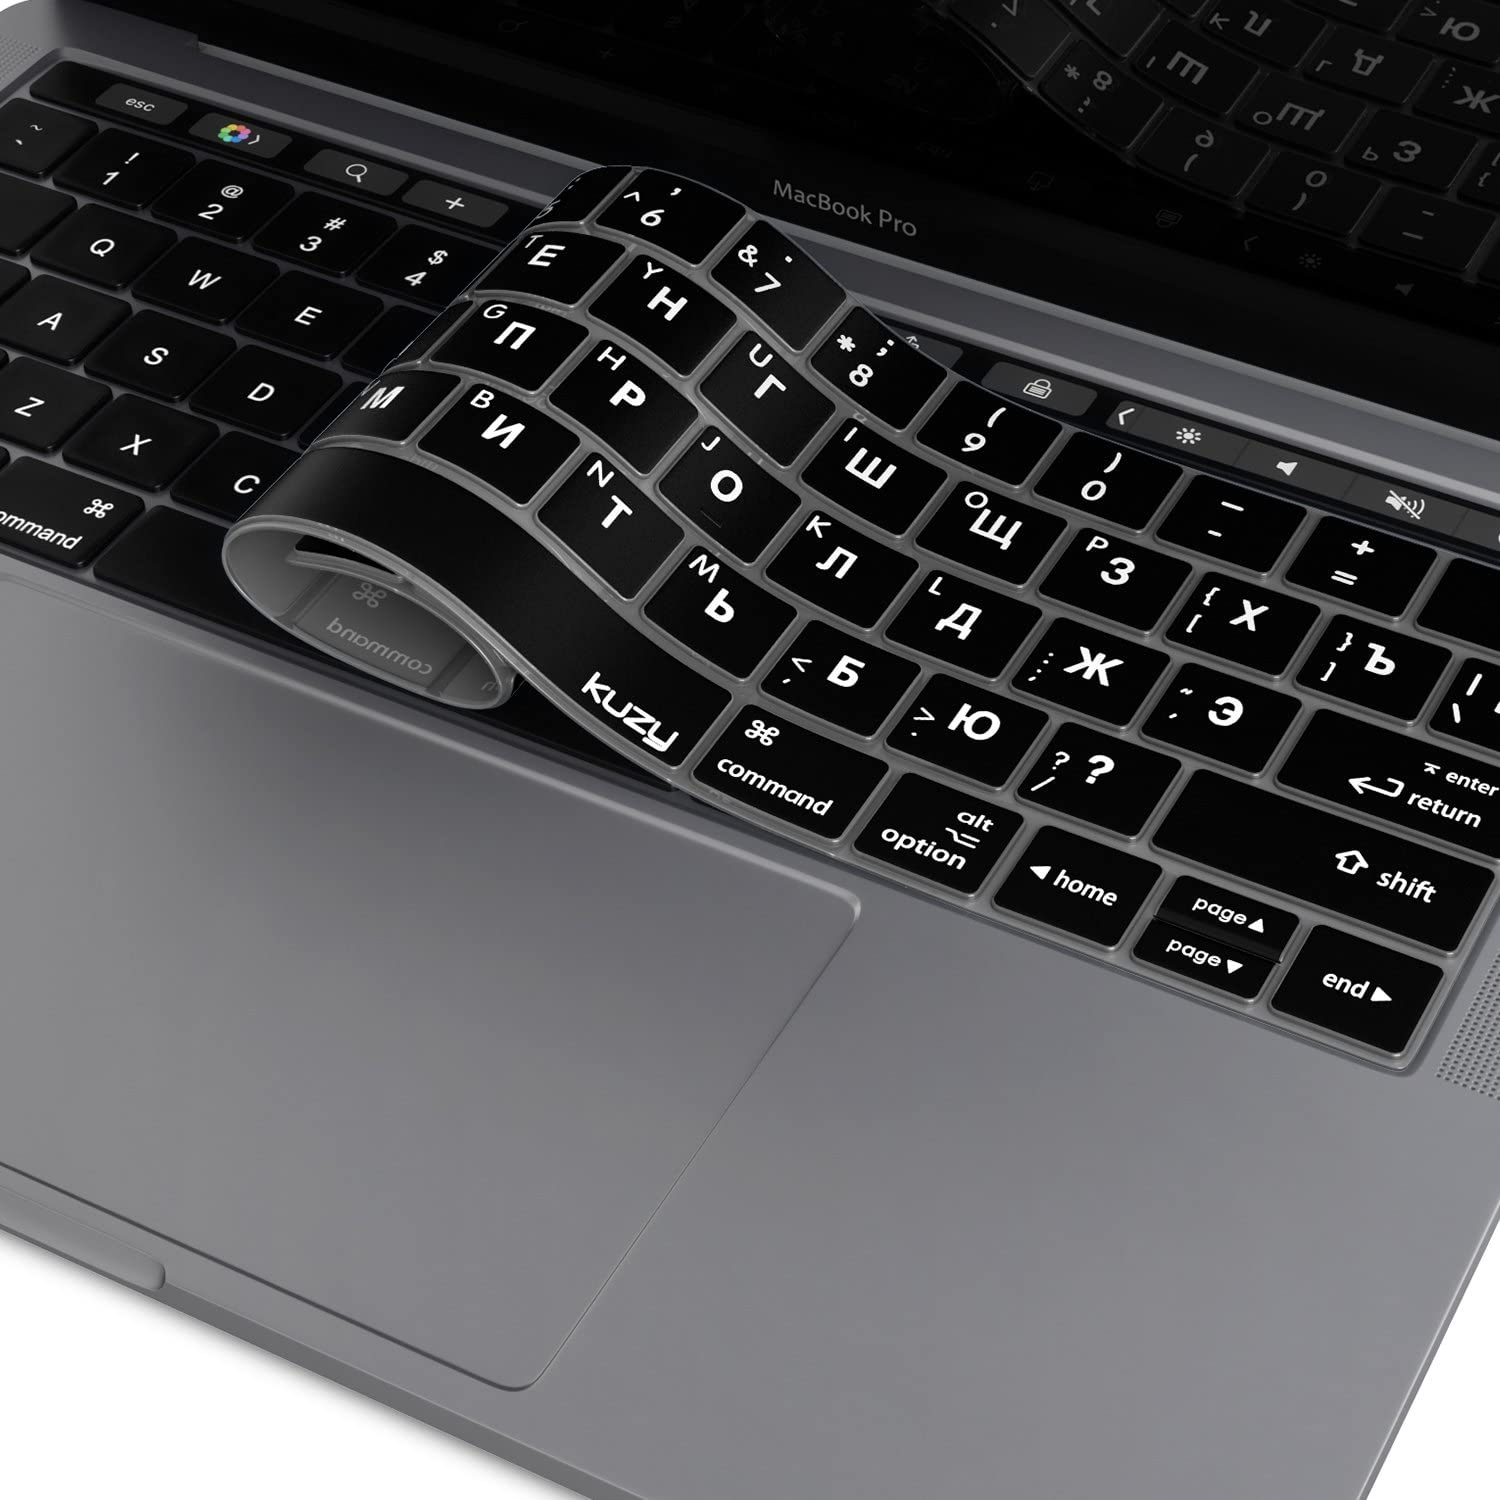 15 Inch A1932 A1989 Keyboard Cover Silicone Skin Compatible MacBook Pro 13 Inch